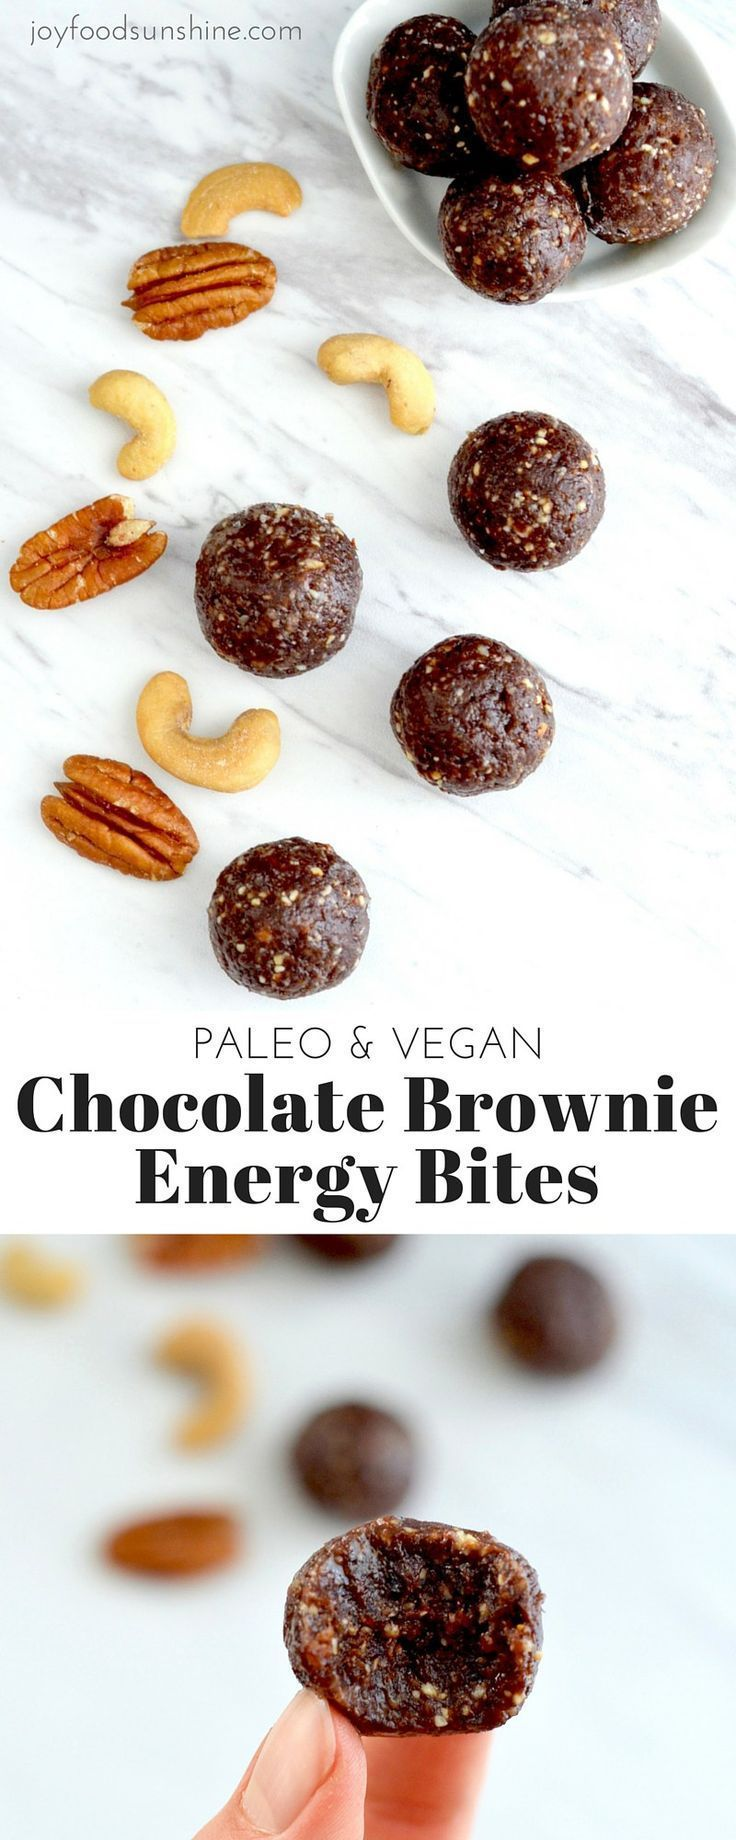 Paleo Chocolate Brownie Energy Bites Recipe! 5 minutes and 8 ingredients is all it takes to make this healthy snack! Vegan, gluten-free, dairy-free & date sweetened!